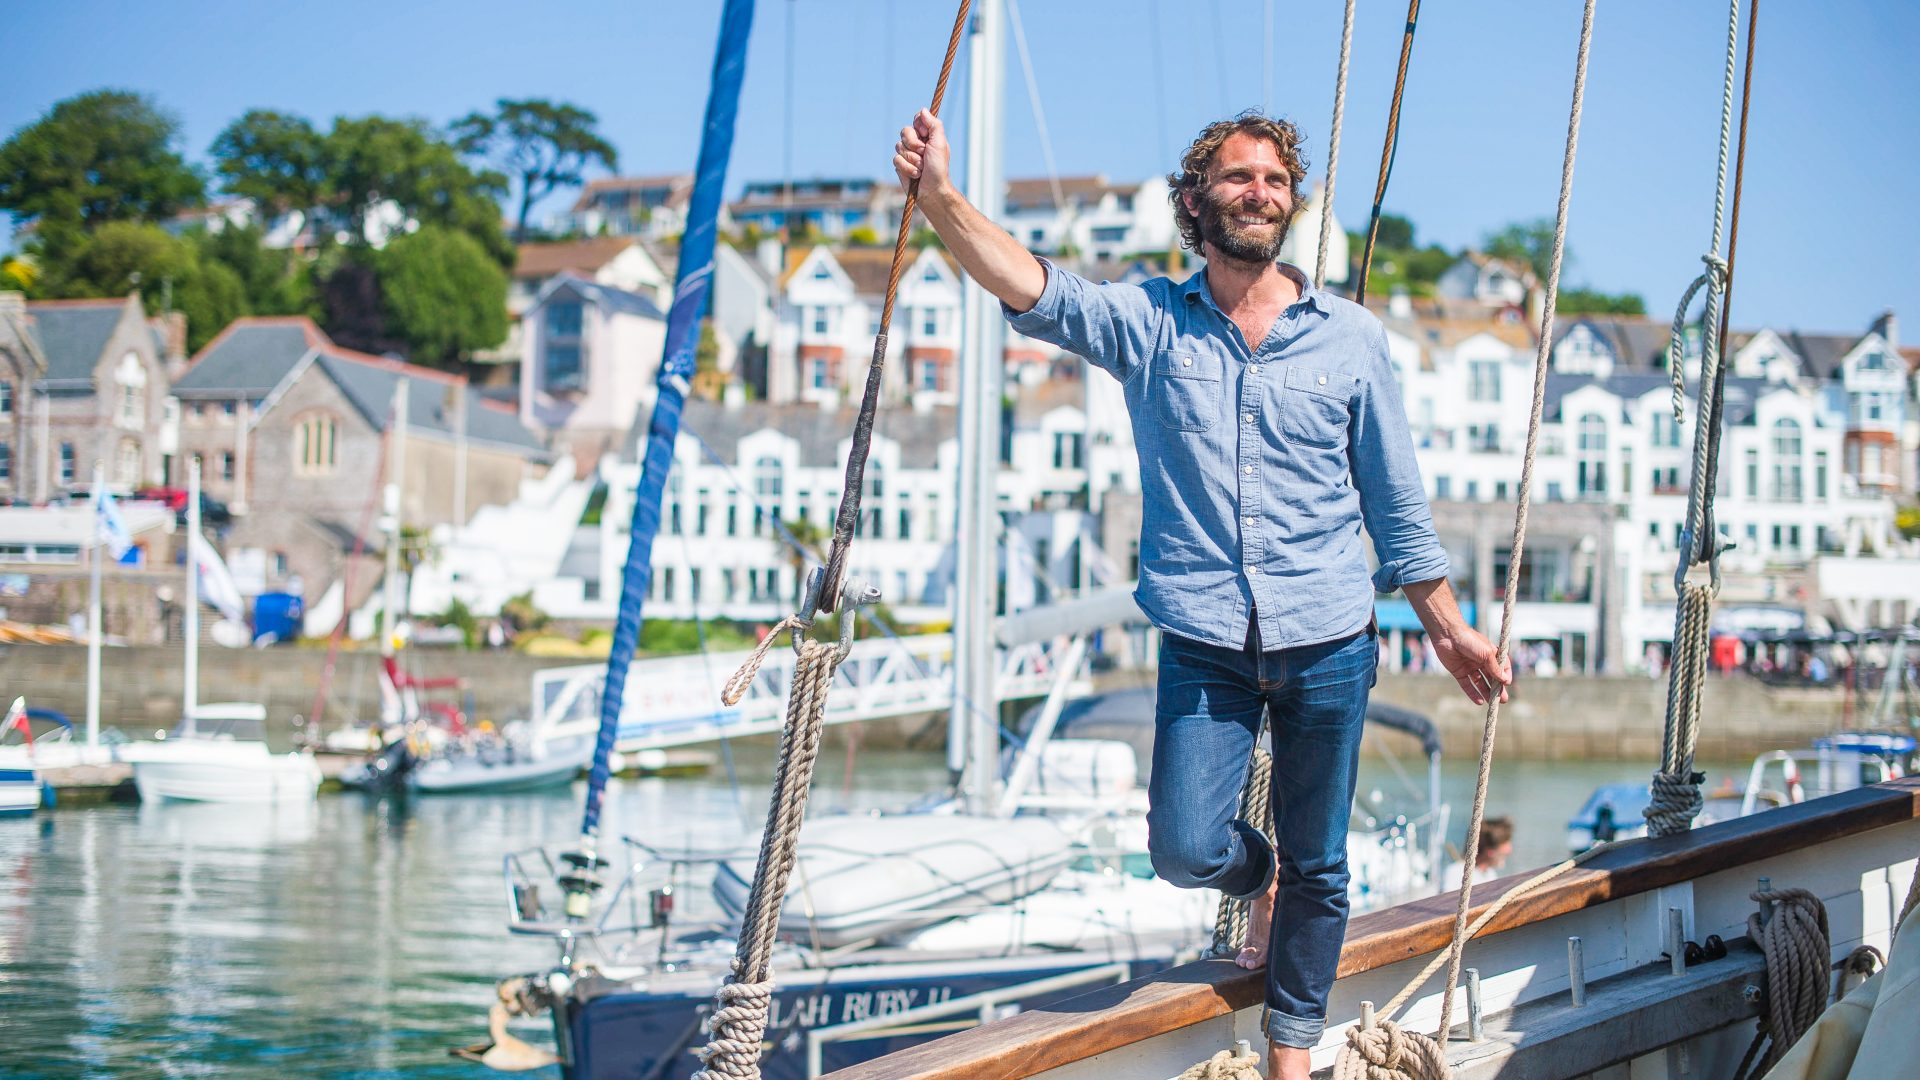 Travel writer James Stewart pictured on the Grayhound, a Cornish Lugger, in Brixham Marina, South Devon